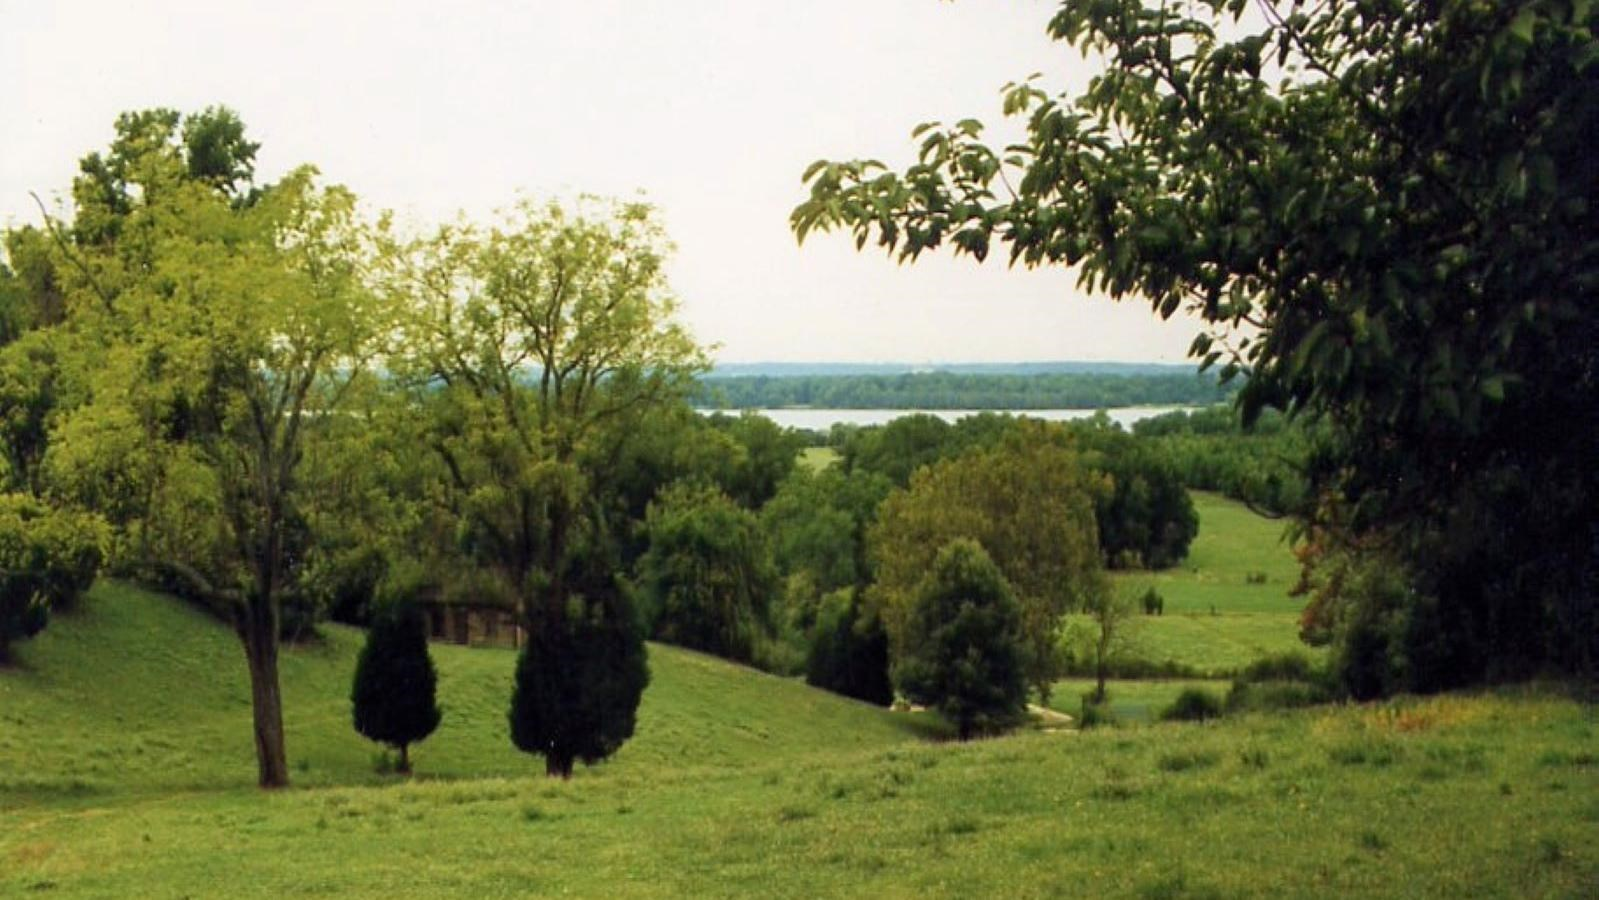 The Accokeek Creek site is a national register property in Prince George's County & Charles County Maryland. Image from NPS